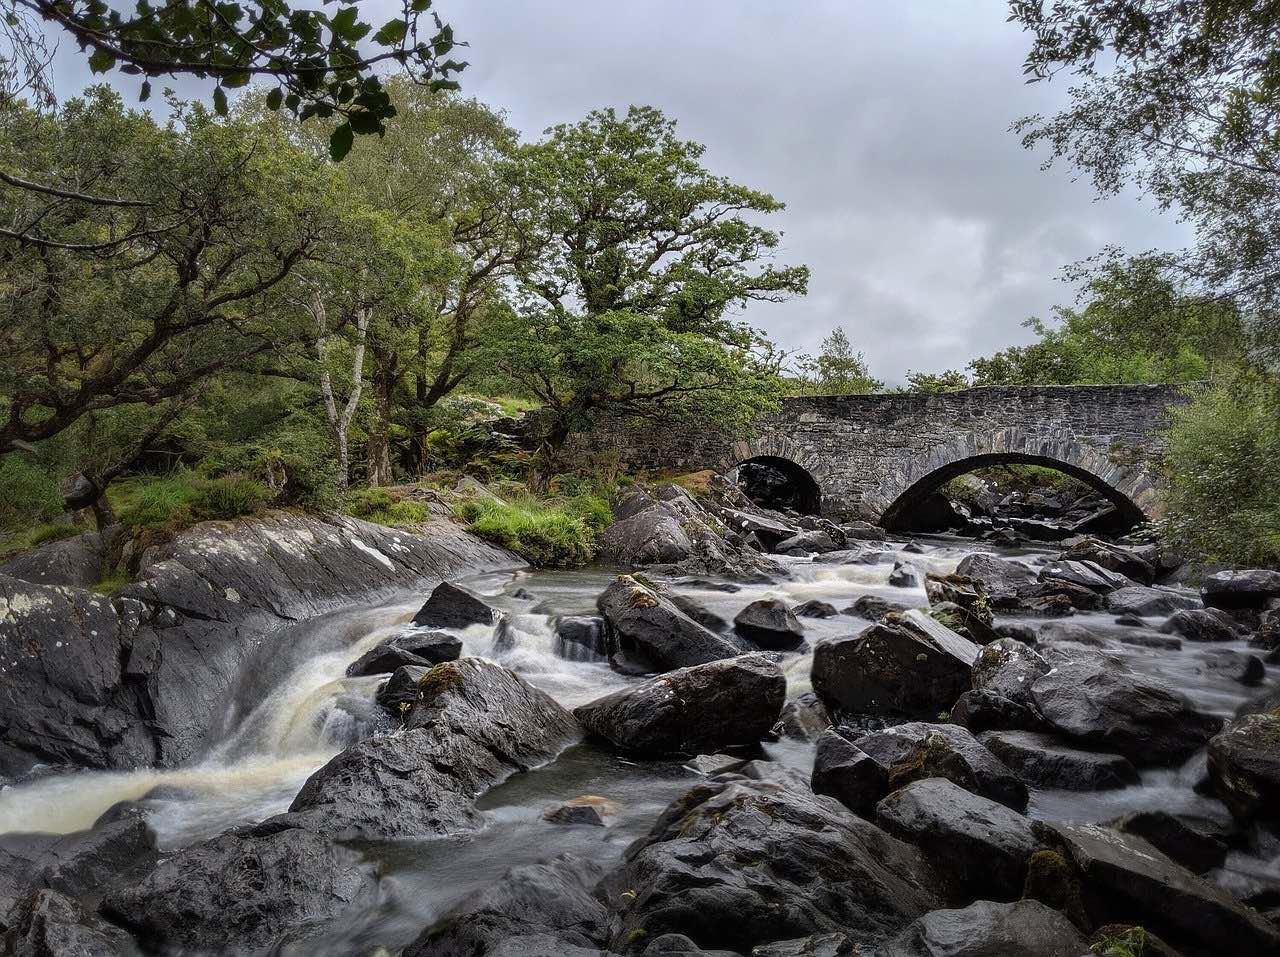 landscape killarney ireland_PD